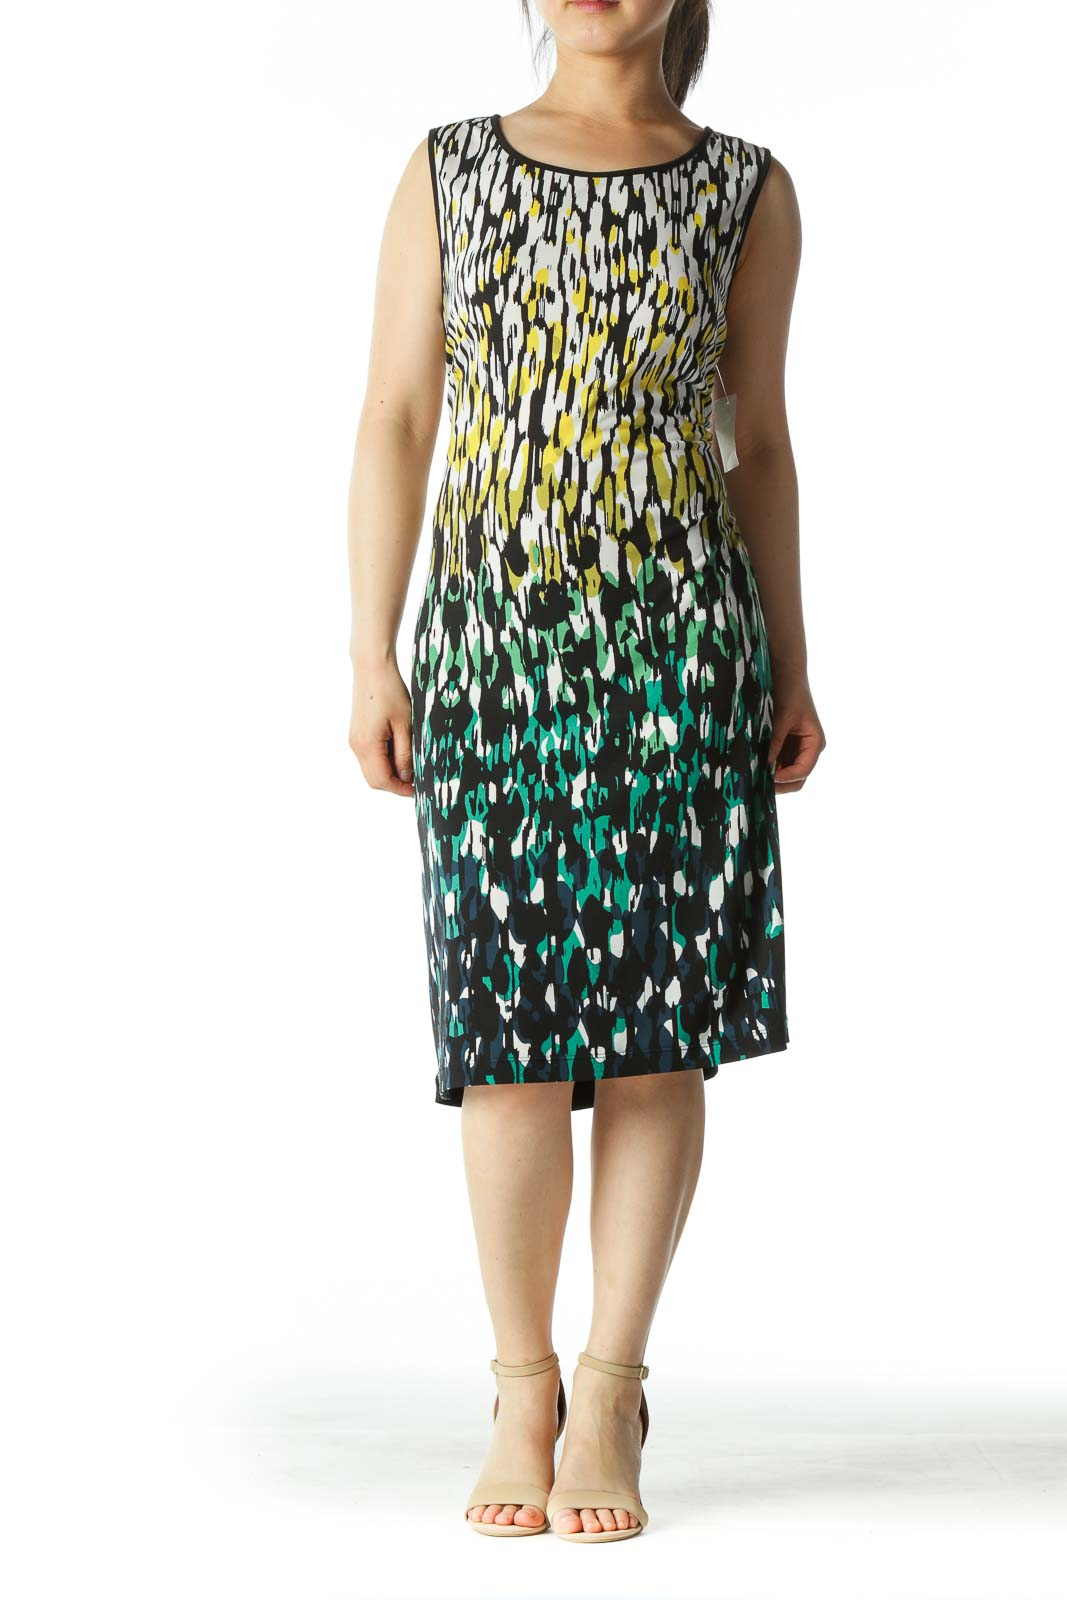 Black and Multicolor Patterned Dress